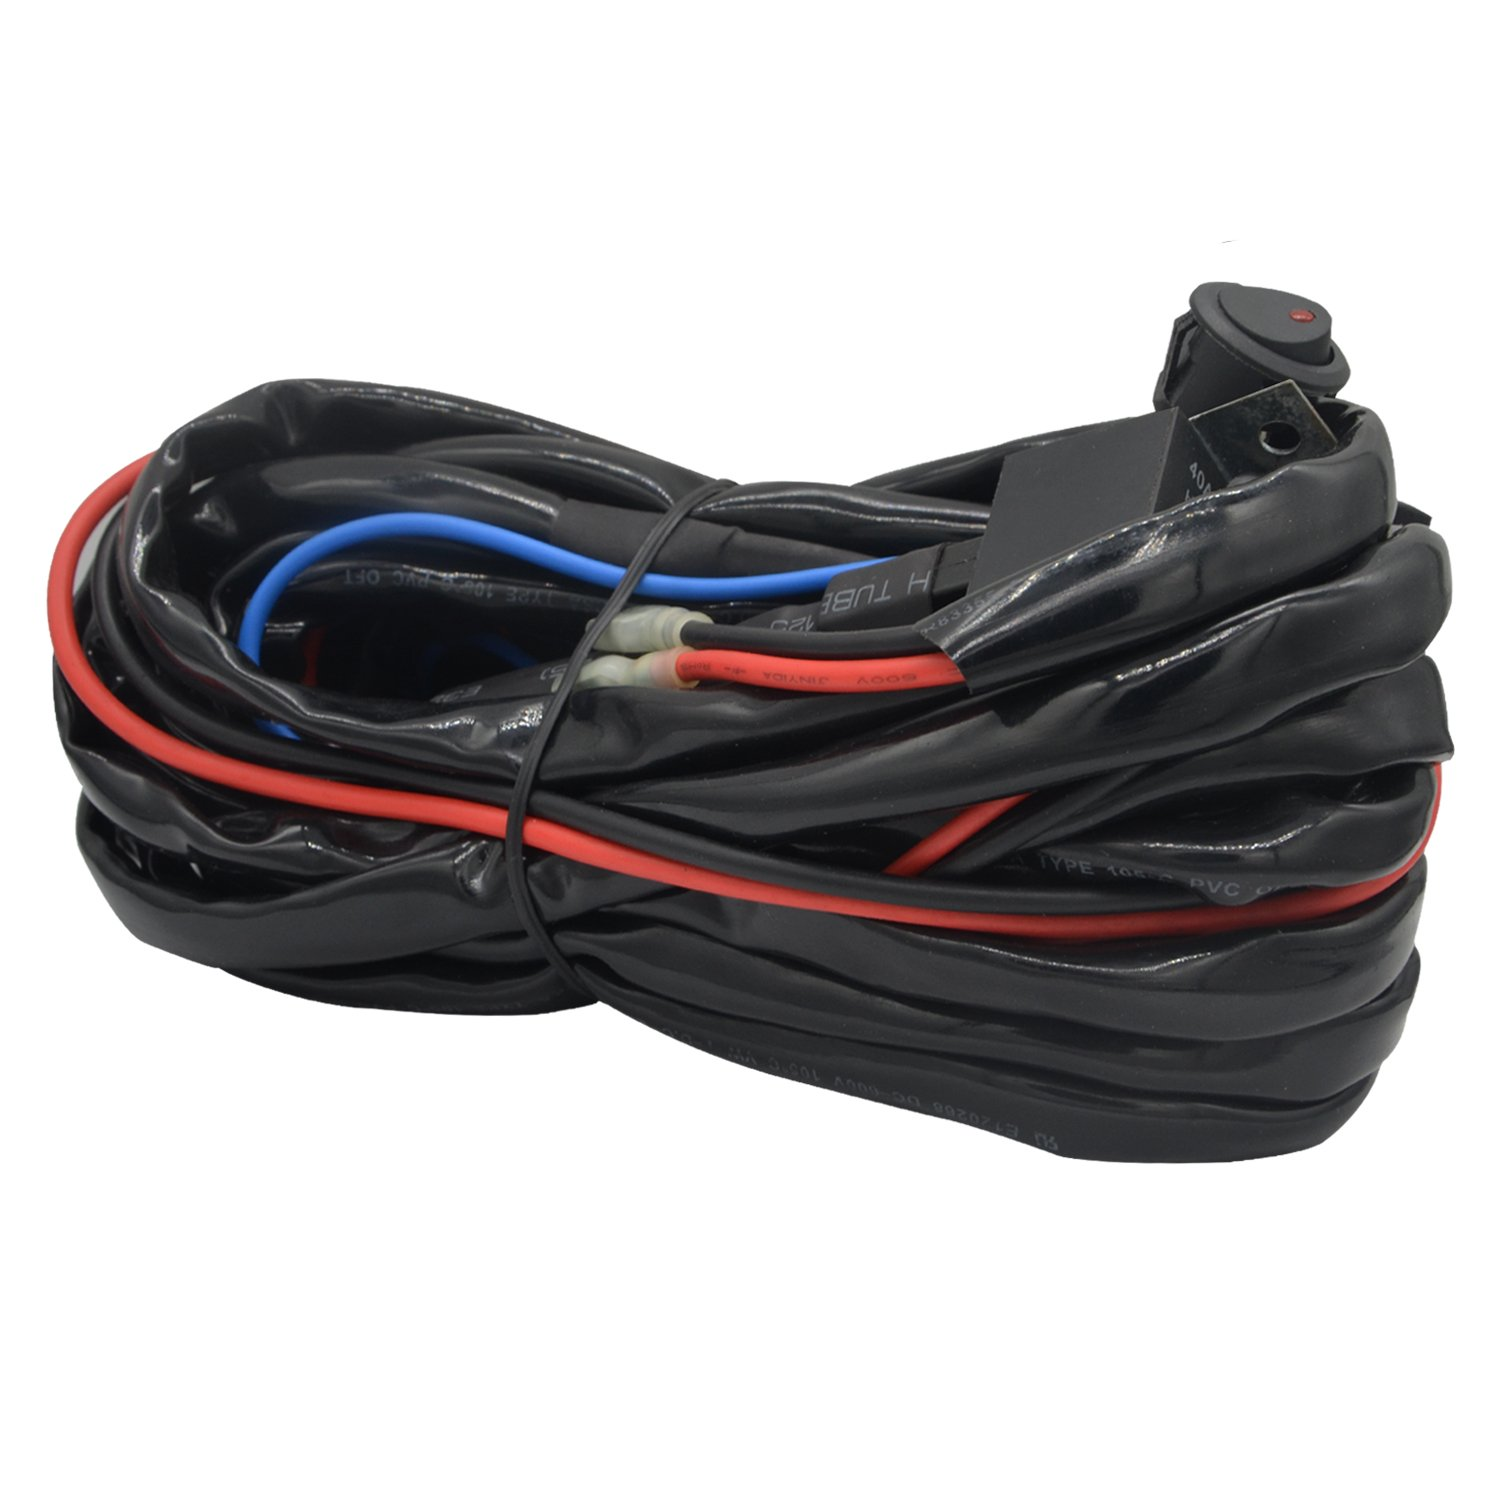 71hdbgsGjCL._SL1500_ amazon com wiring harnesses electrical automotive  at edmiracle.co